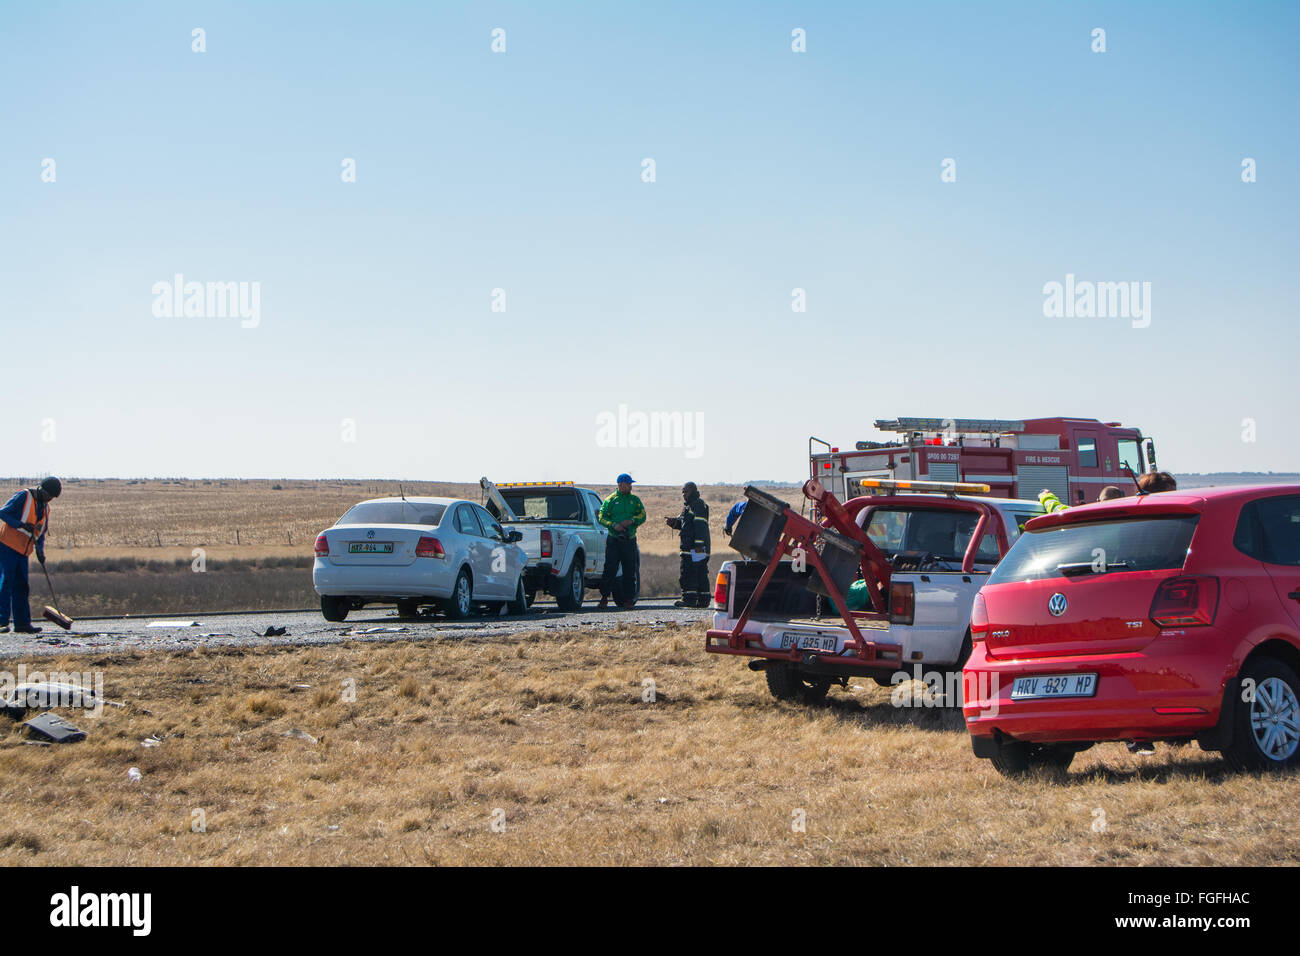 Clean up operations after an accident along the highway - Stock Image